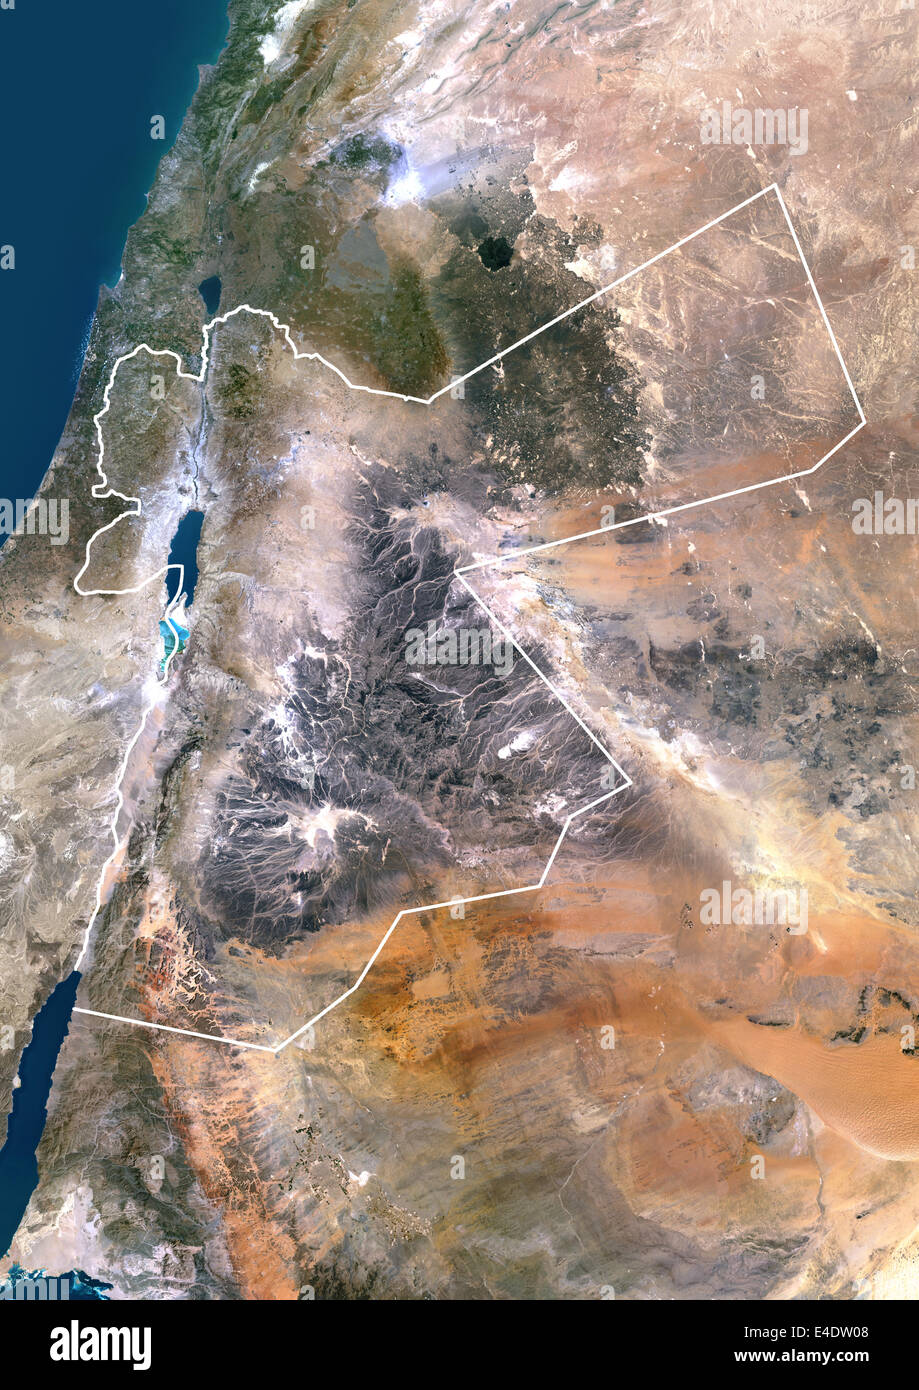 Jordan, Middle East, Asia, True Colour Satellite Image With ... on biblical middle east map jordan, biblical cities of the bible, biblical maps then and now, biblical map of jordan, biblical map vs today's map, biblical world map, biblical maps with modern map overlay, biblical antioch map, biblical maps of rome, biblical maps of egypt, biblical mediterranean map of crete, biblical middle east map overlay, biblical map of macedonia greece, biblical maps of turkey, biblical map of iraq, biblical maps of europe, biblical lands of israel, people from the middle east, biblical map of africa, biblical israel map,